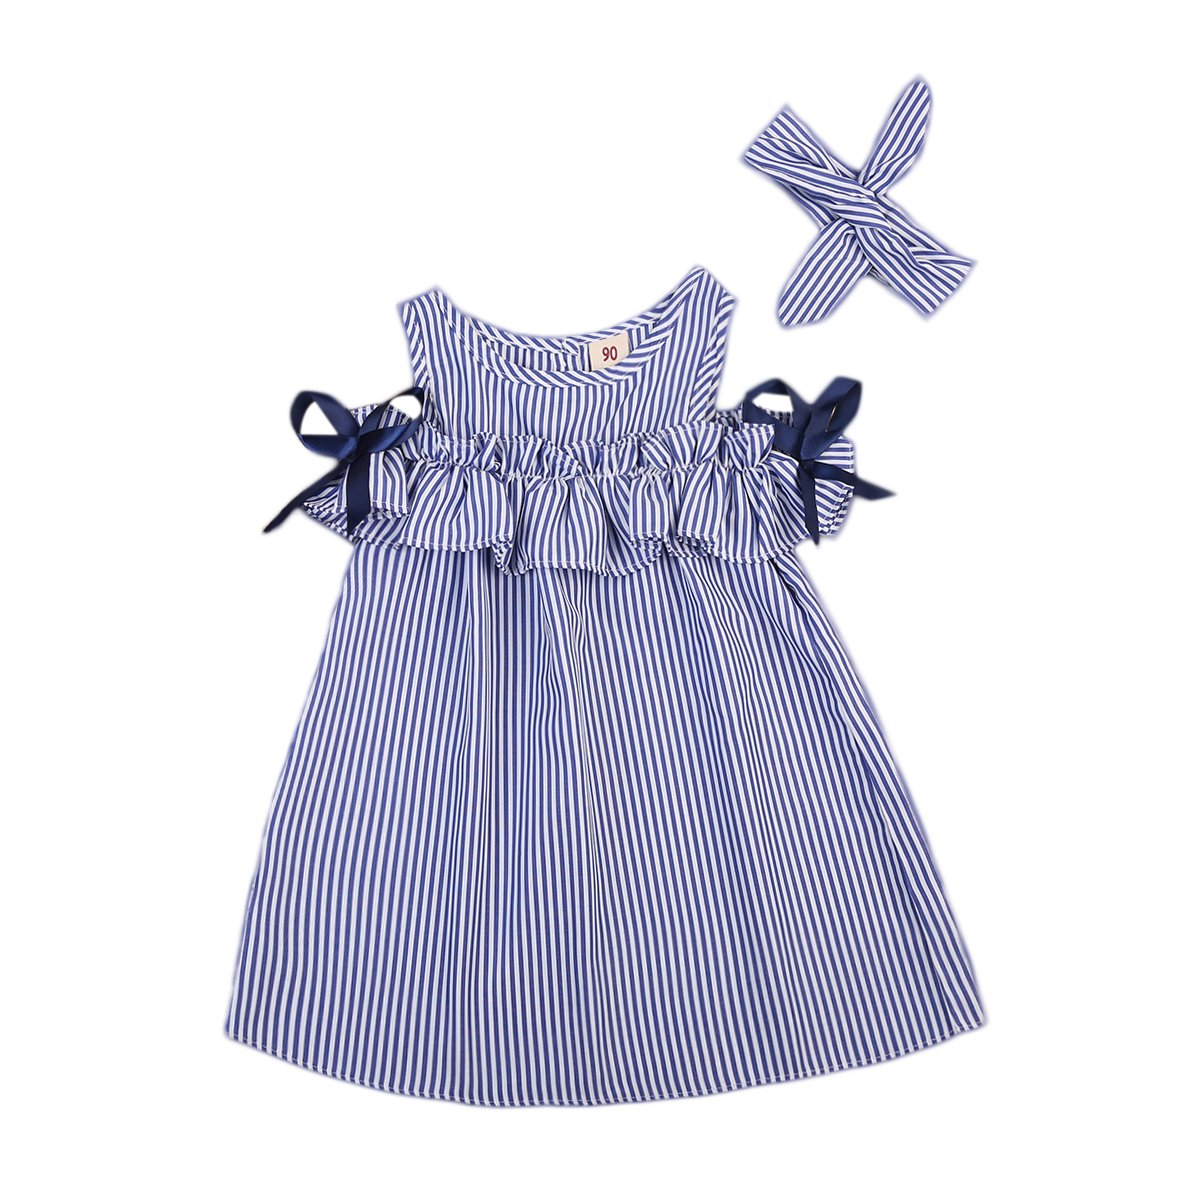 --Hot Summer Toddler Kids Baby Girls Clothes Blue Striped Off-shoulder Party Gown Formal Dress--